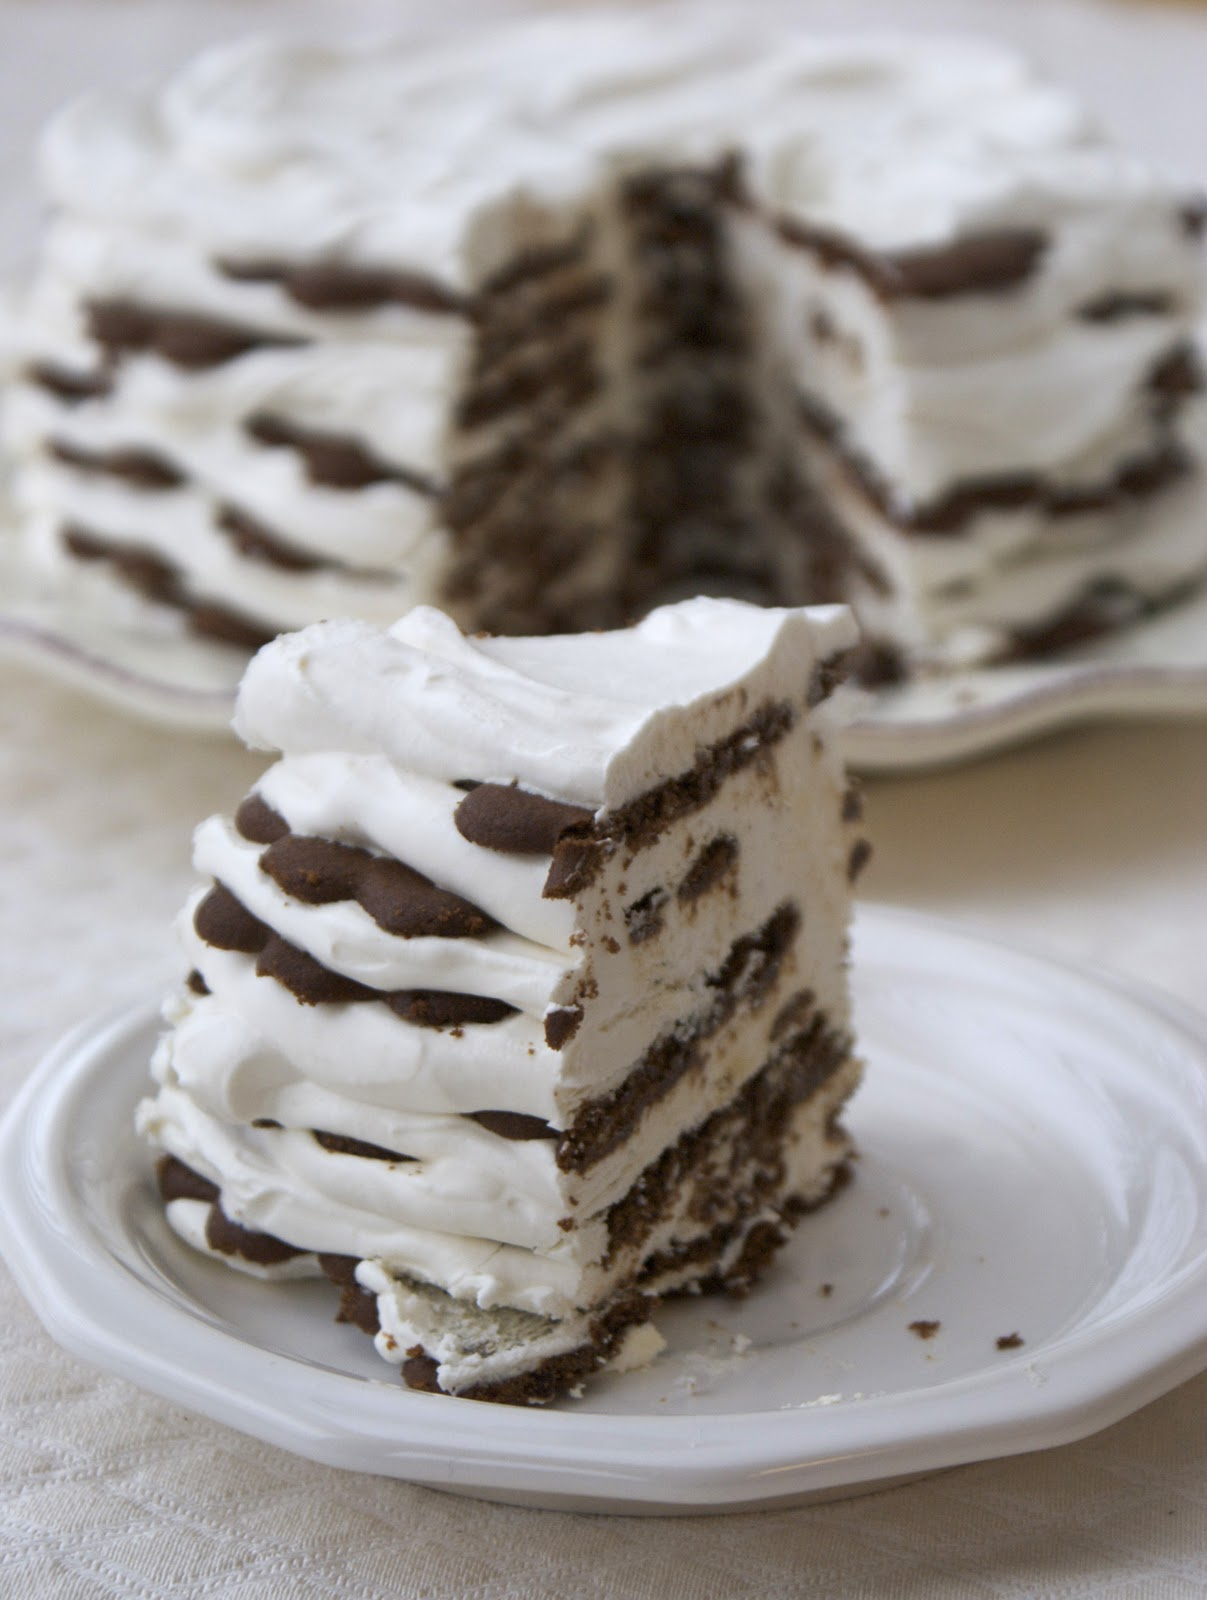 ... Chocolate Chip Oreo Ice Cream Cake With An Bon Appe Cake on Pinterest